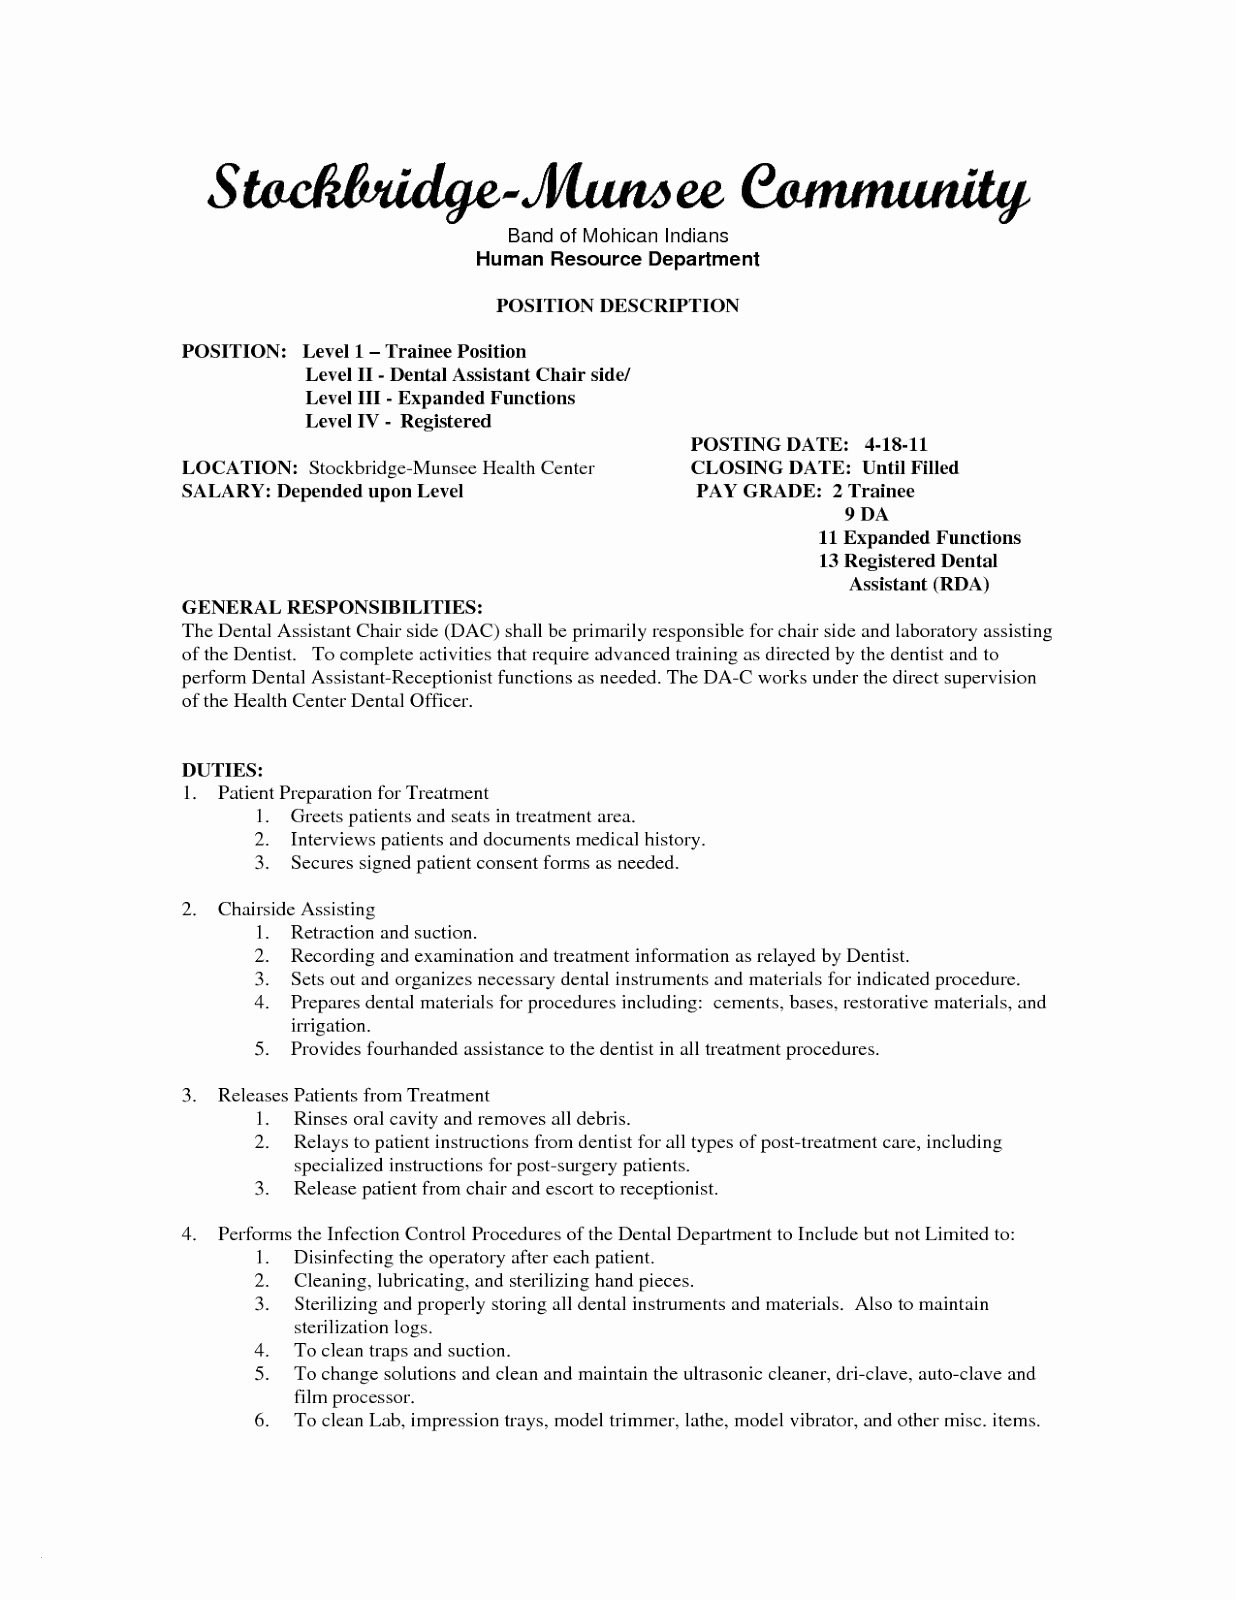 Orthodontic assistant Resume - Dental assistant Responsibilities Resume New Dental assistant Resume